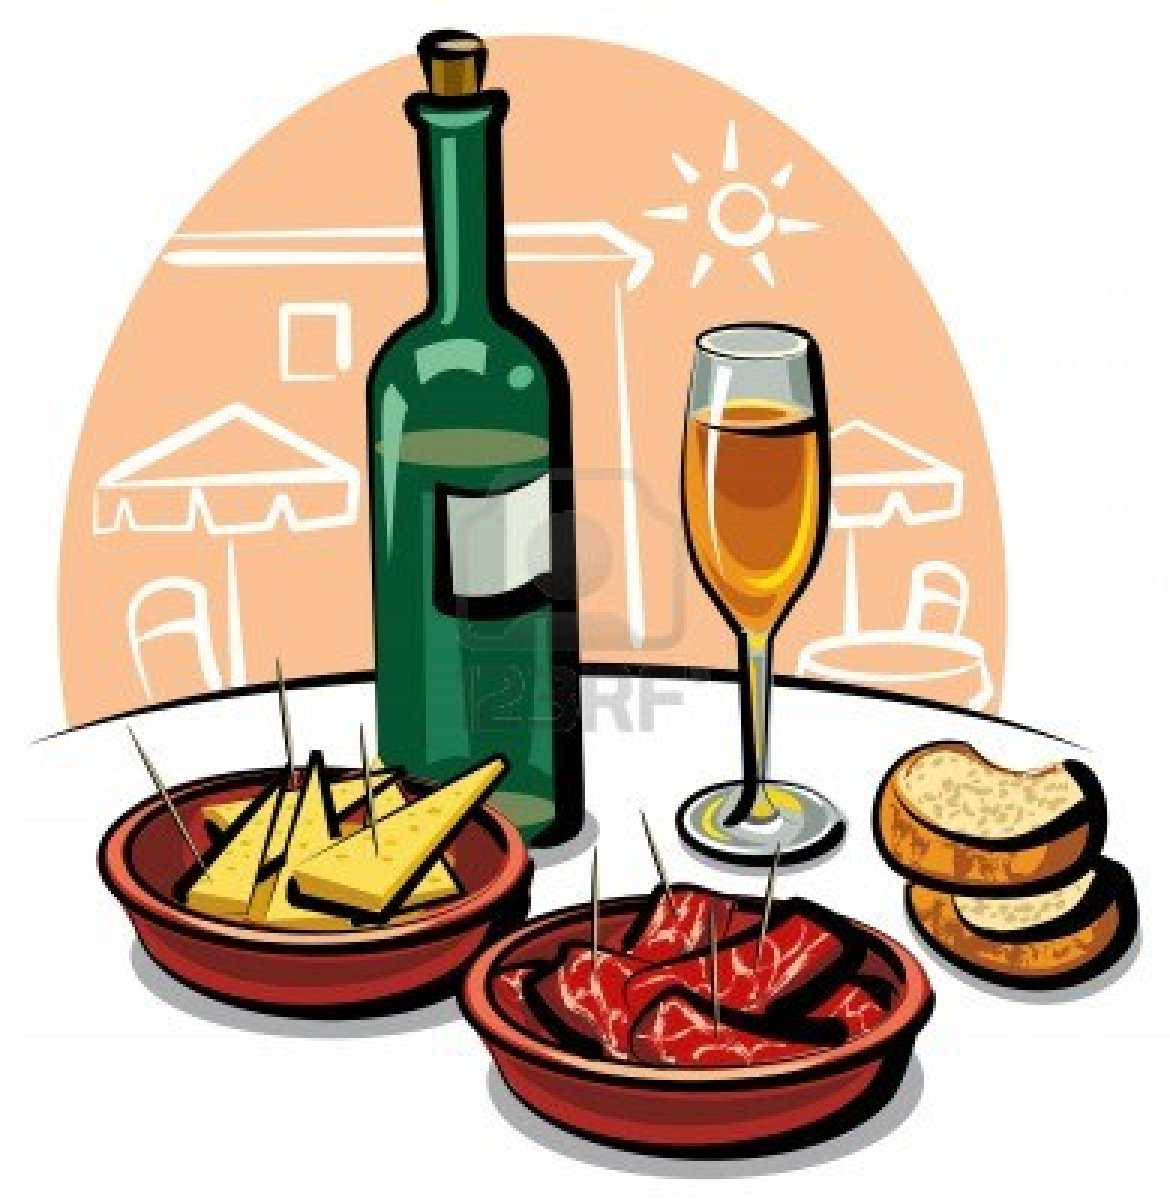 Boose clipart food and drink Art and Tapas 1 wine